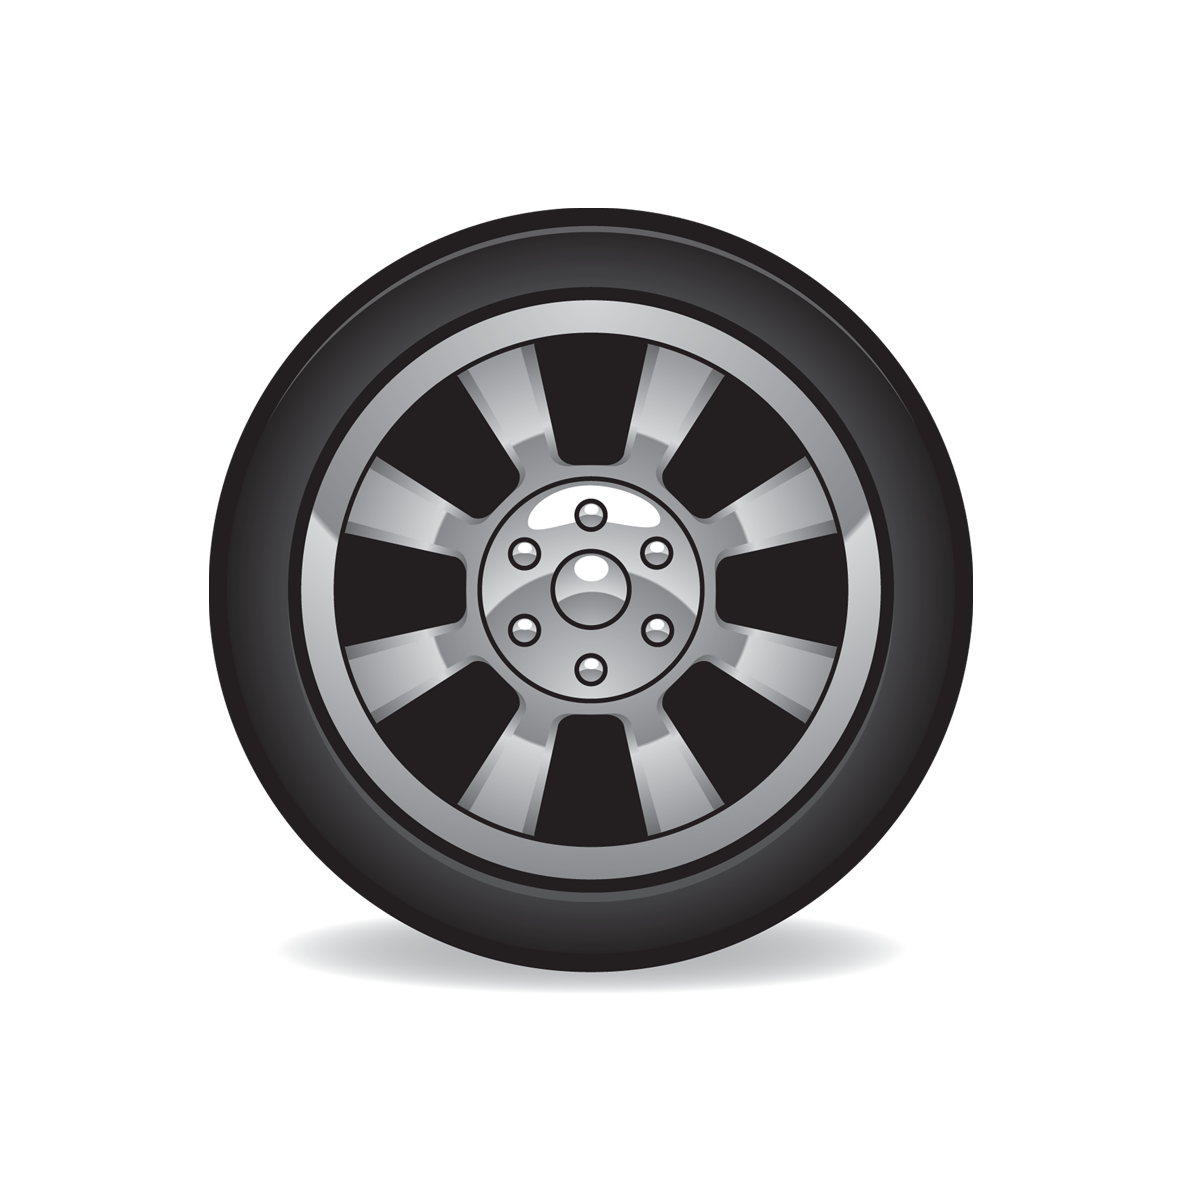 Tire Icon Full Size Free Images at Clker vector